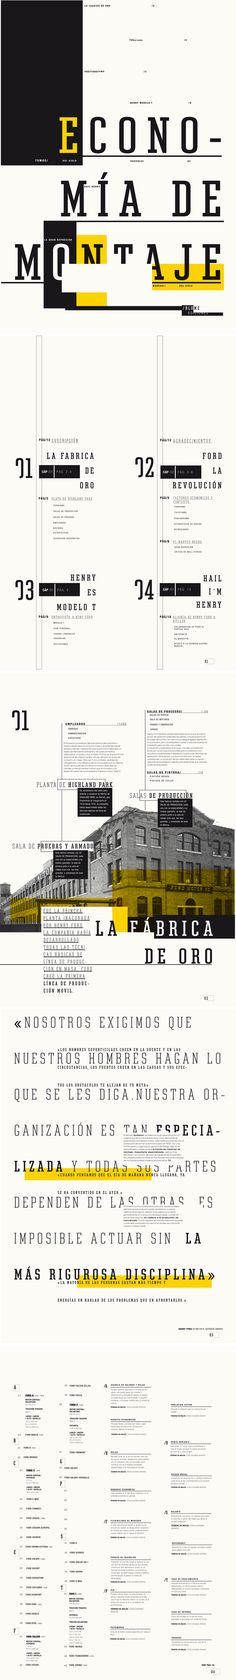 Editorial - Economia by M. Belen Garcia, via Behance